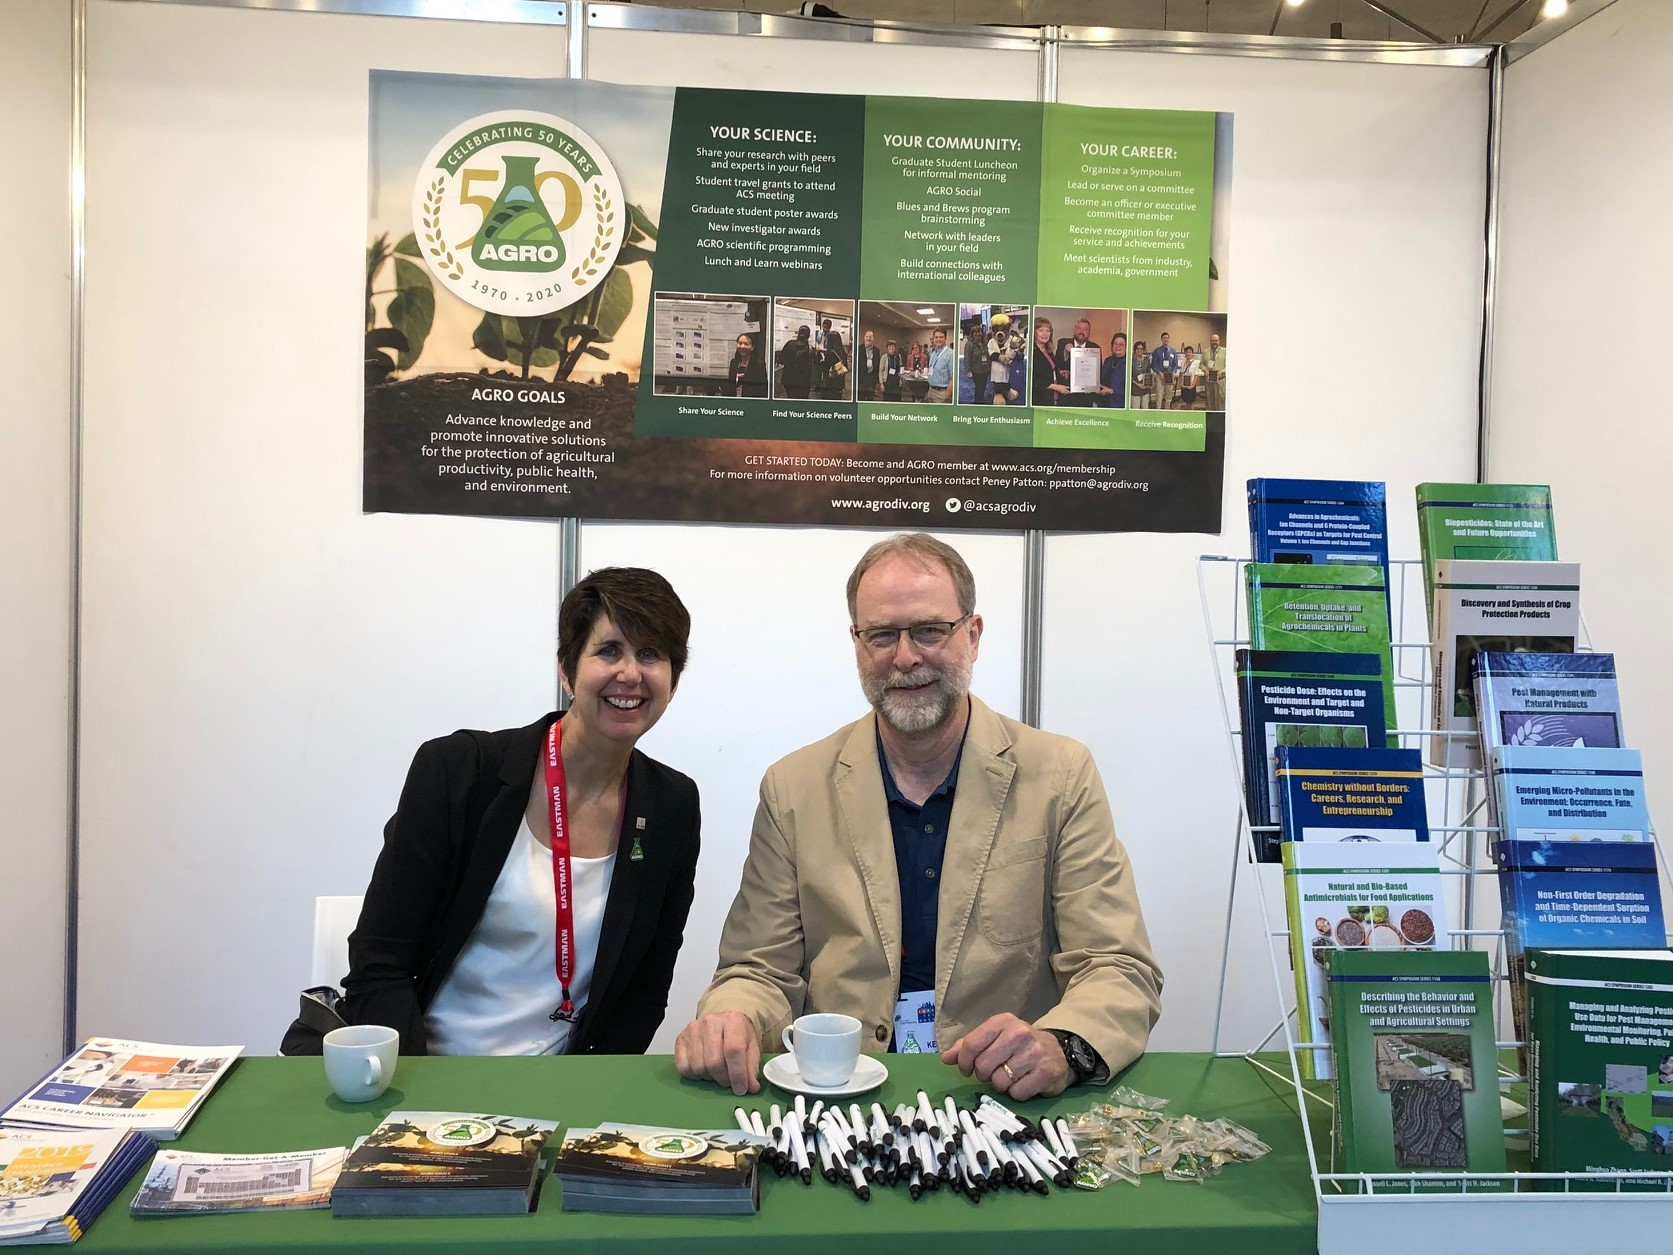 AGRO Comes To IUPAC In Ghent Belgium